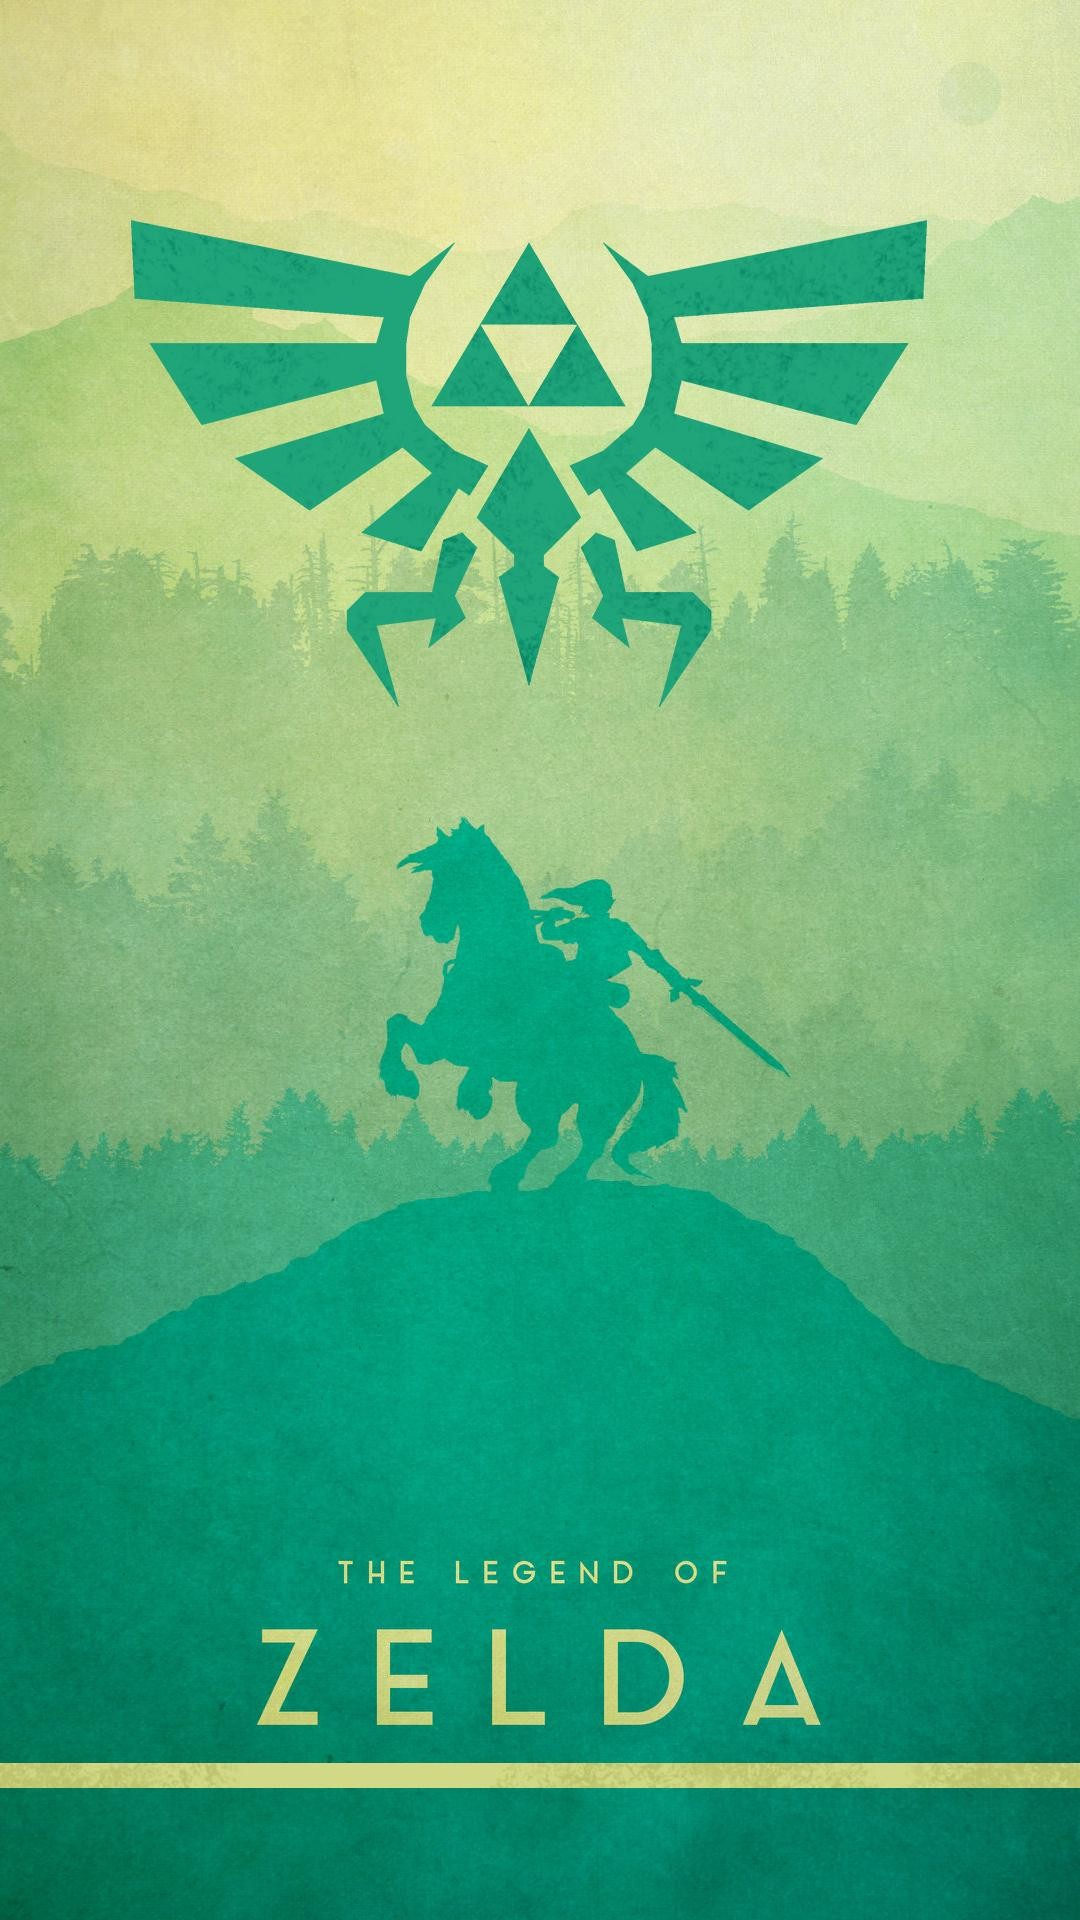 Zelda Phone Wallpaper ·① WallpaperTag